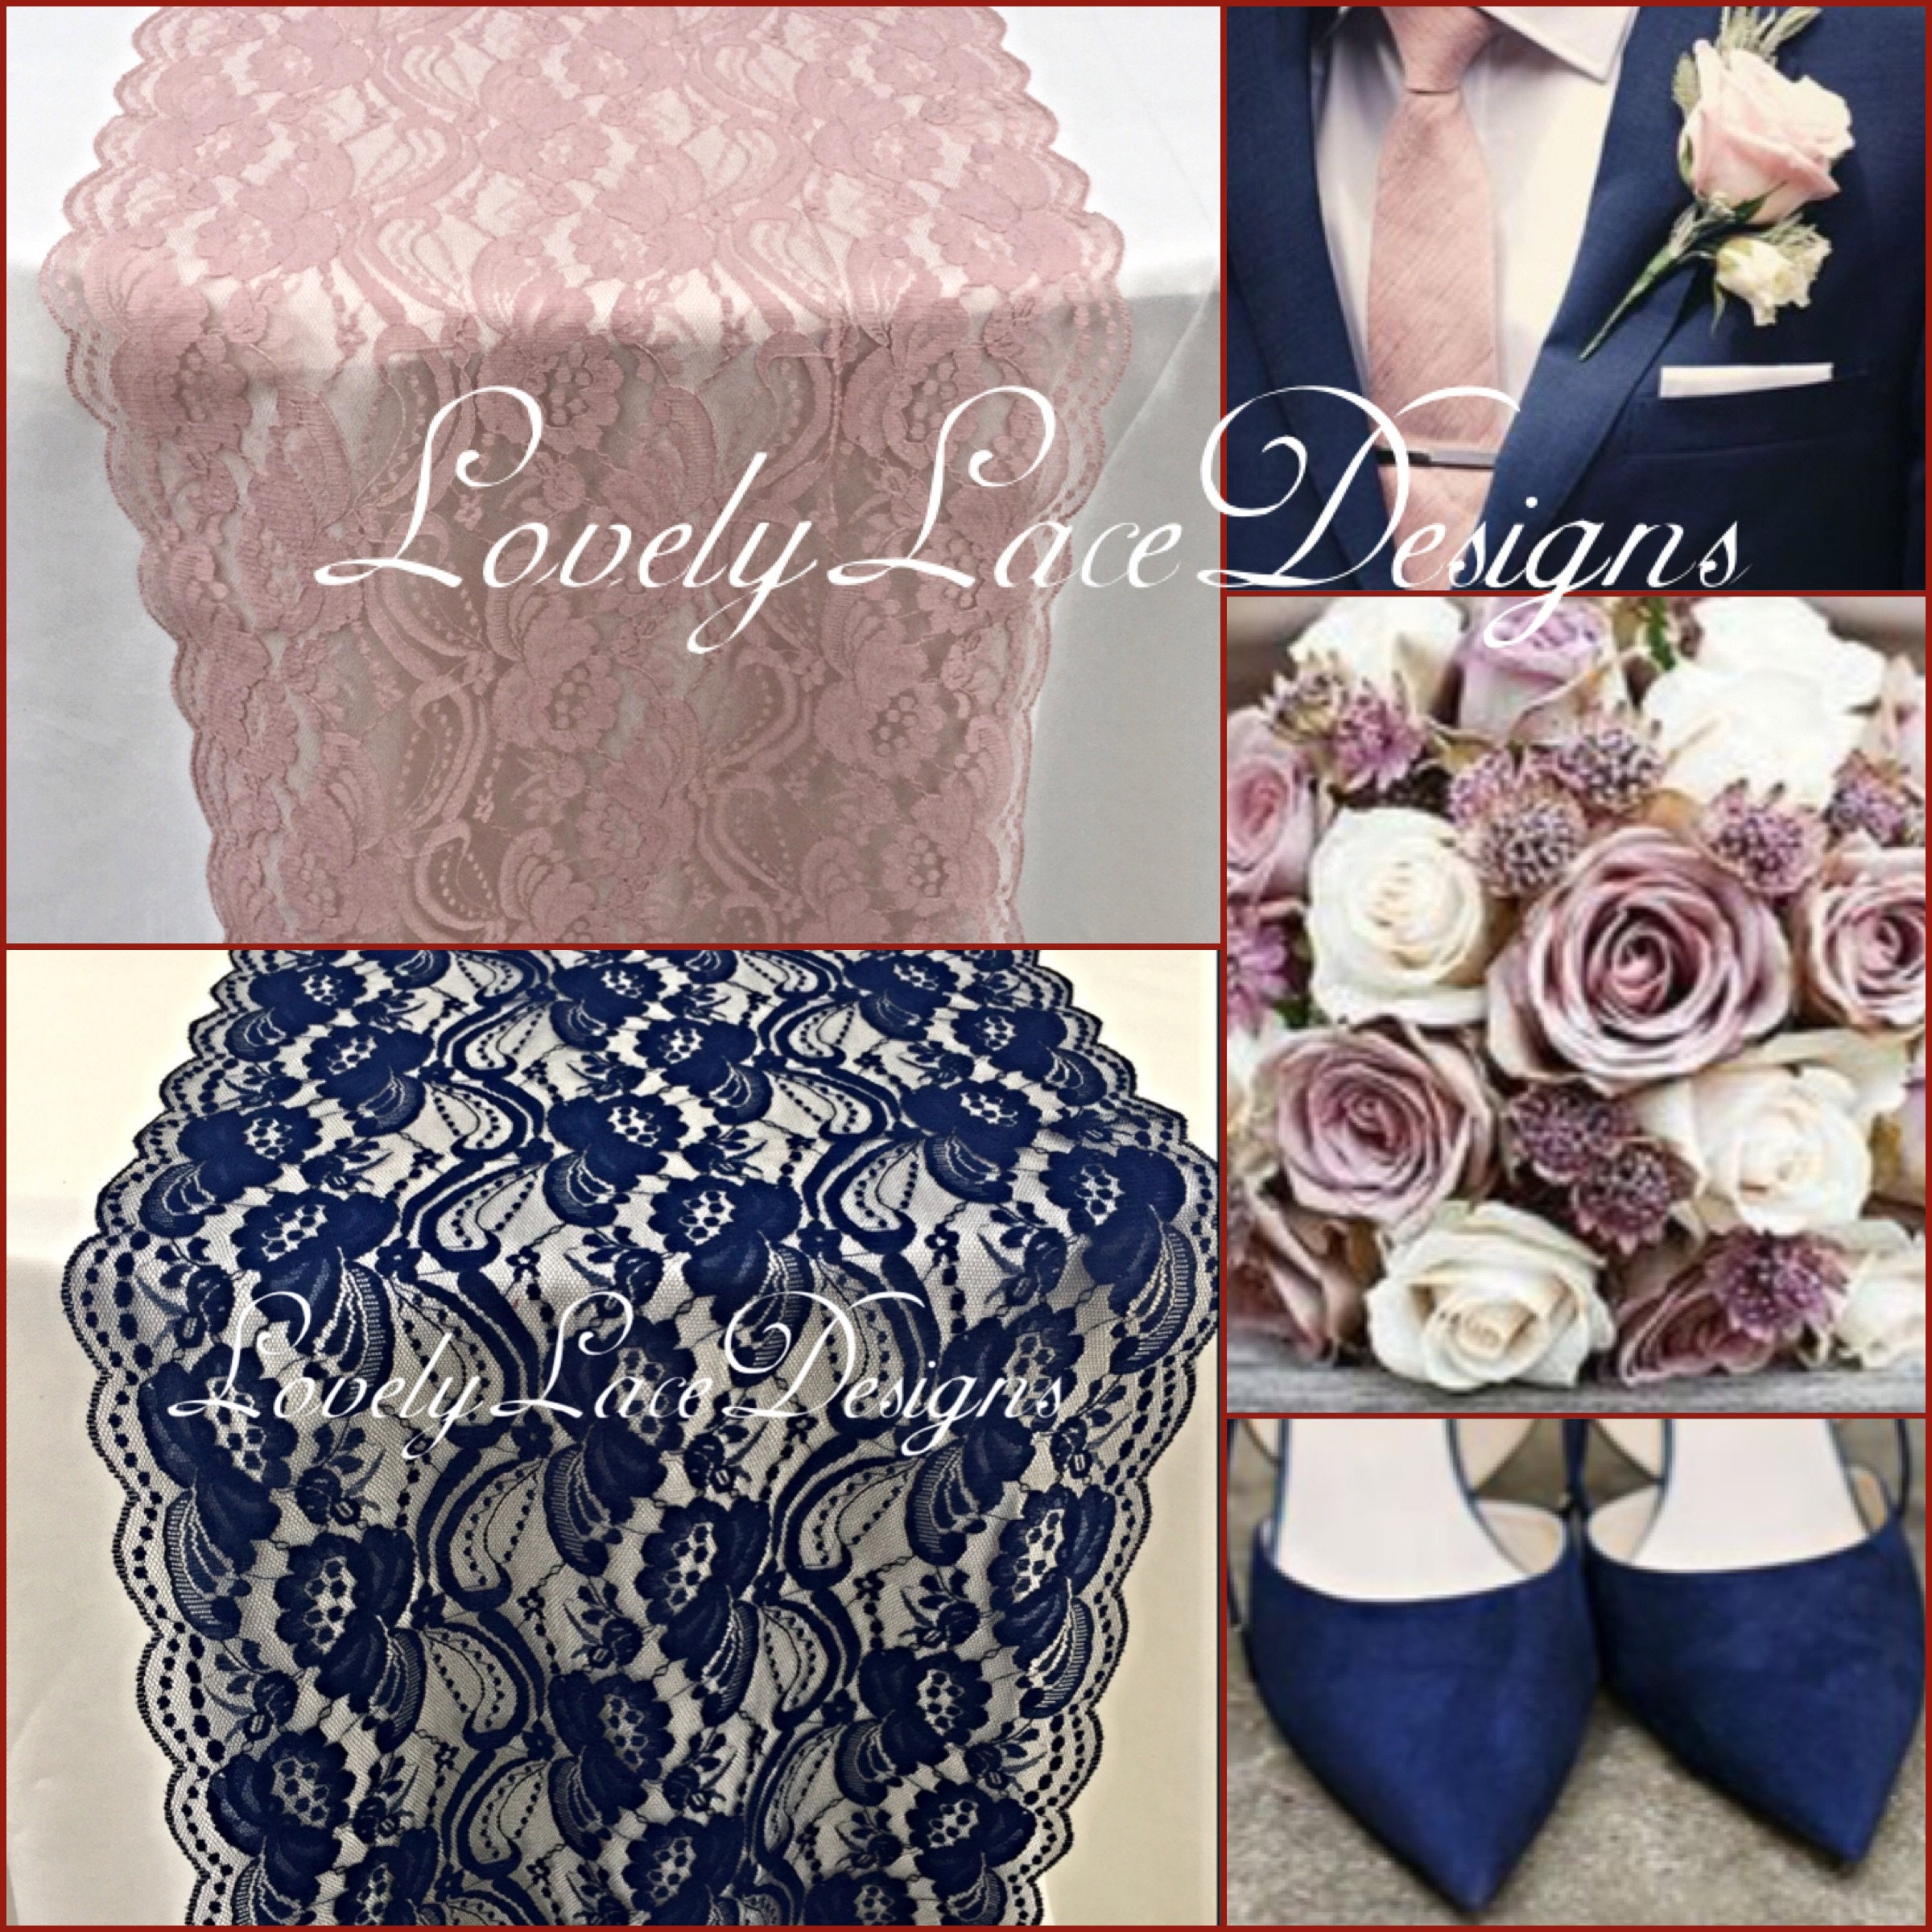 Navy Blue Bedroom Colors Dusty Pink Bedroom Accessories Small Bedroom Chairs Ikea Good Bedroom Color Schemes: Dusty Rose/Lace Table Runner/12wide/3ft -10ft Long/Wedding